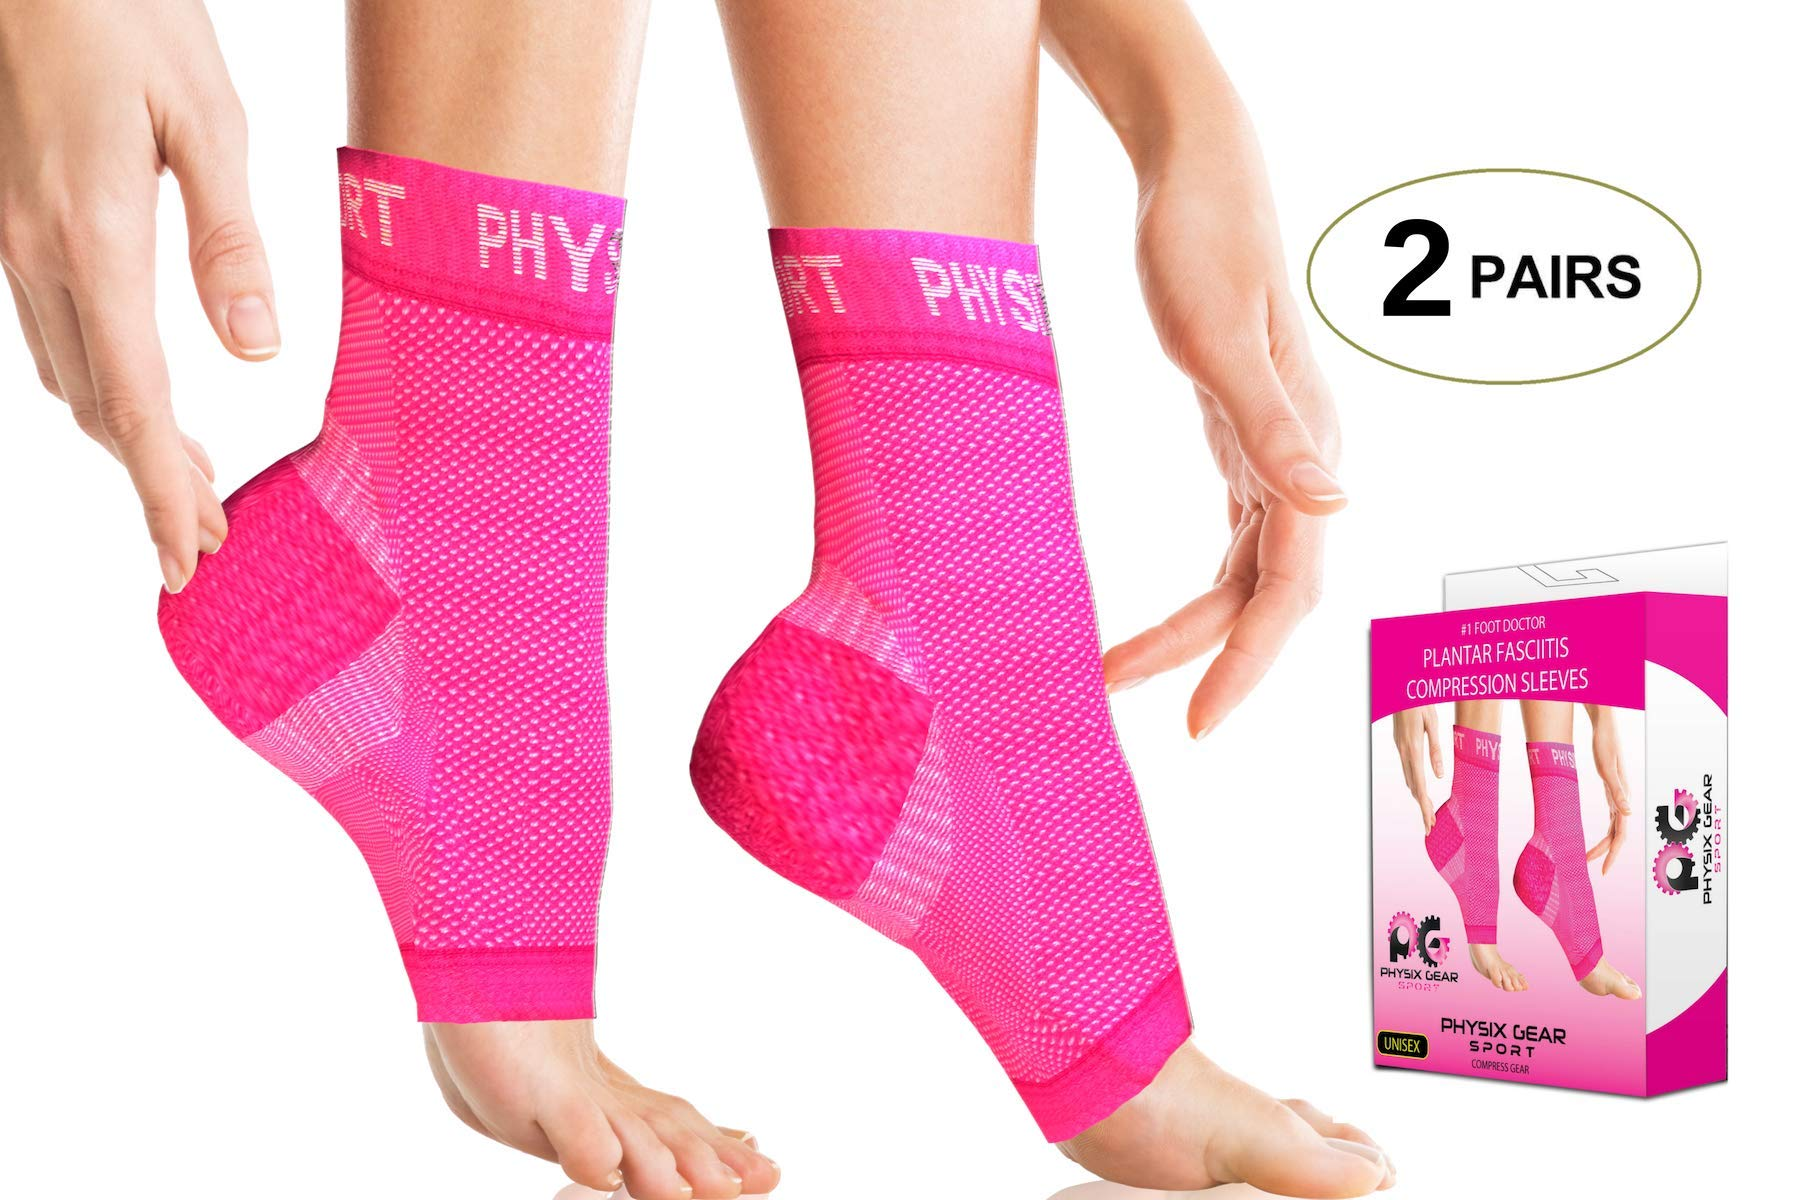 2 PAIRS Plantar Fasciitis Socks with Arch Support, BEST 24/7 Foot Care Compression Sleeve, Better than Night Splint, Eases Swelling & Heel Spurs, Ankle Circulation, Relieve Pain Fast - Pink S/M